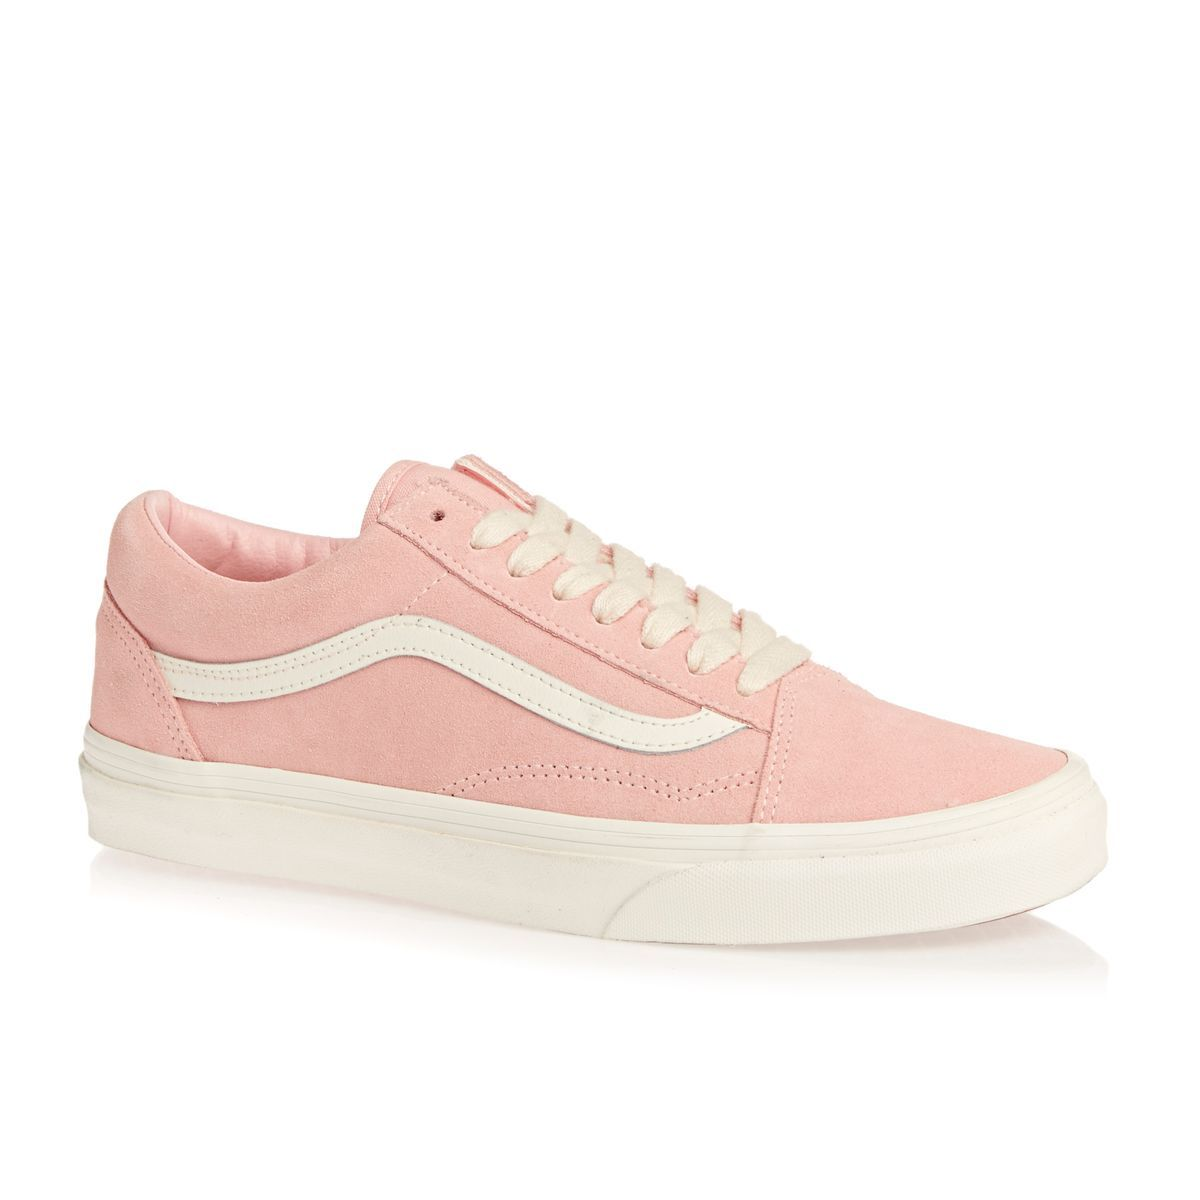 Buy Vans Ua Old Skool Retro Sport Shoes Blossom/True White with great  prices,